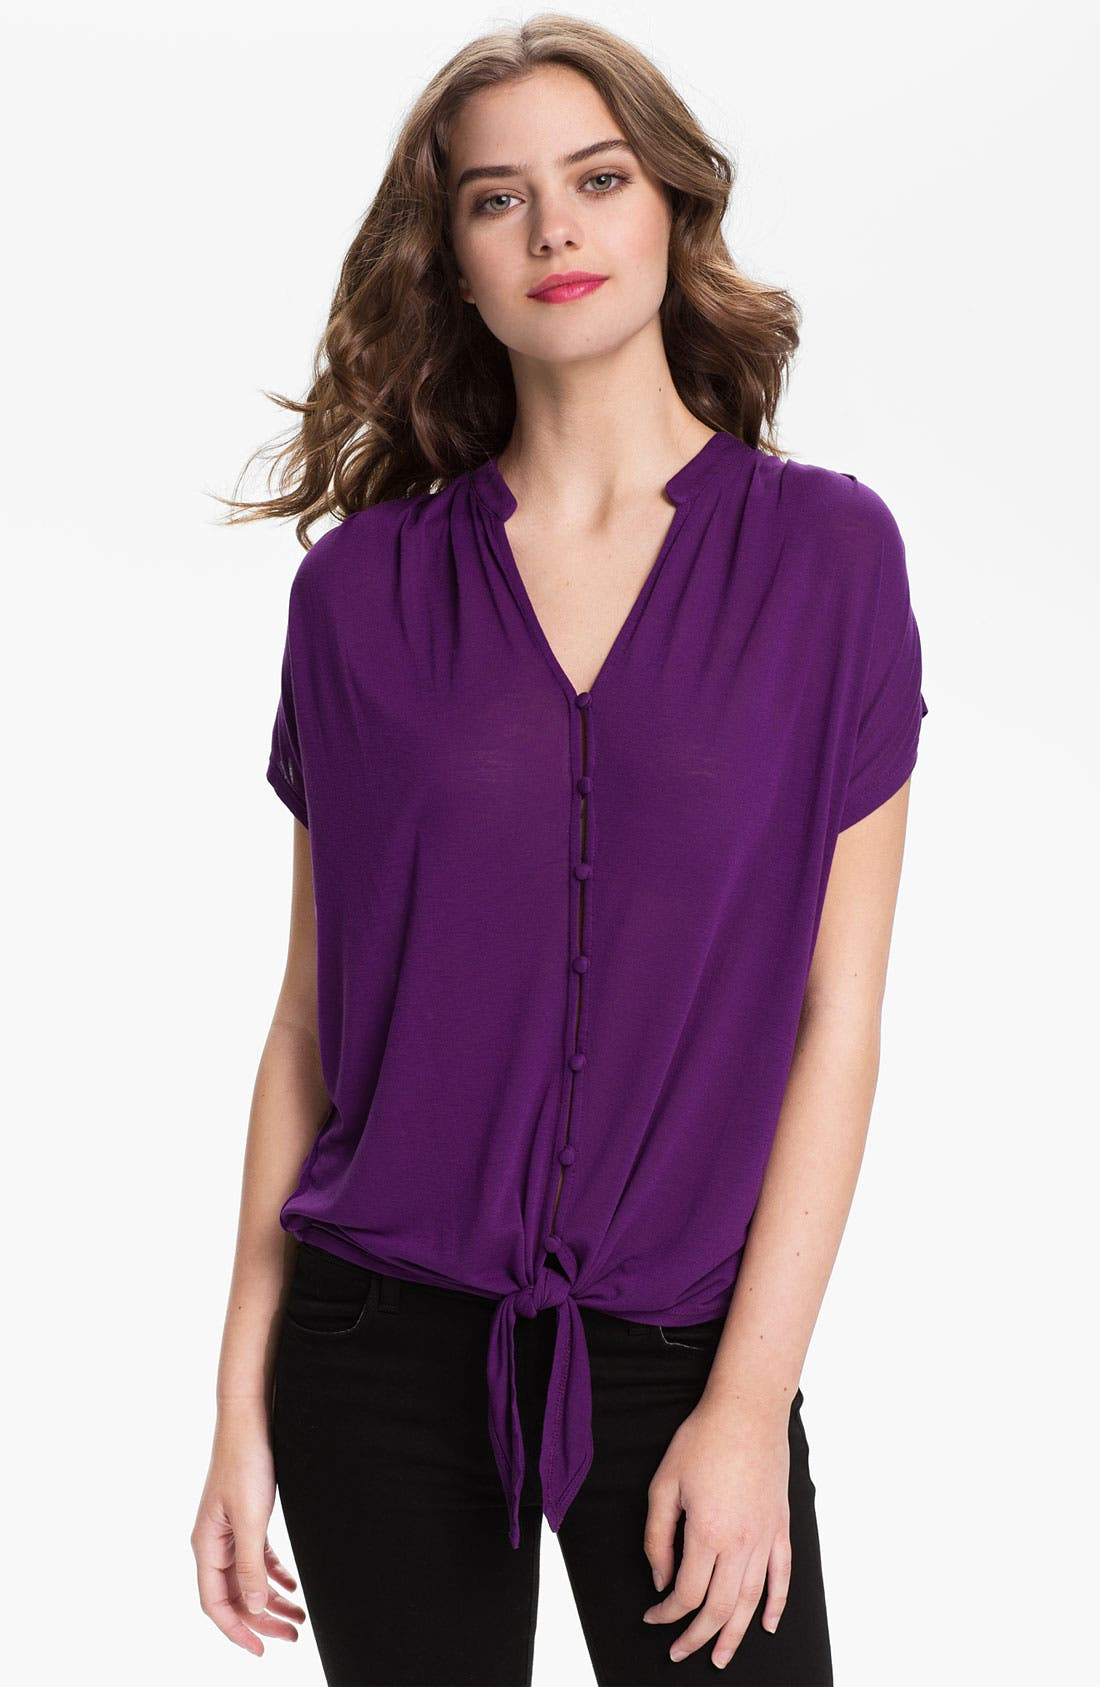 Alternate Image 1 Selected - Joie 'Baxter' Dolman Sleeve Tie Front Blouse